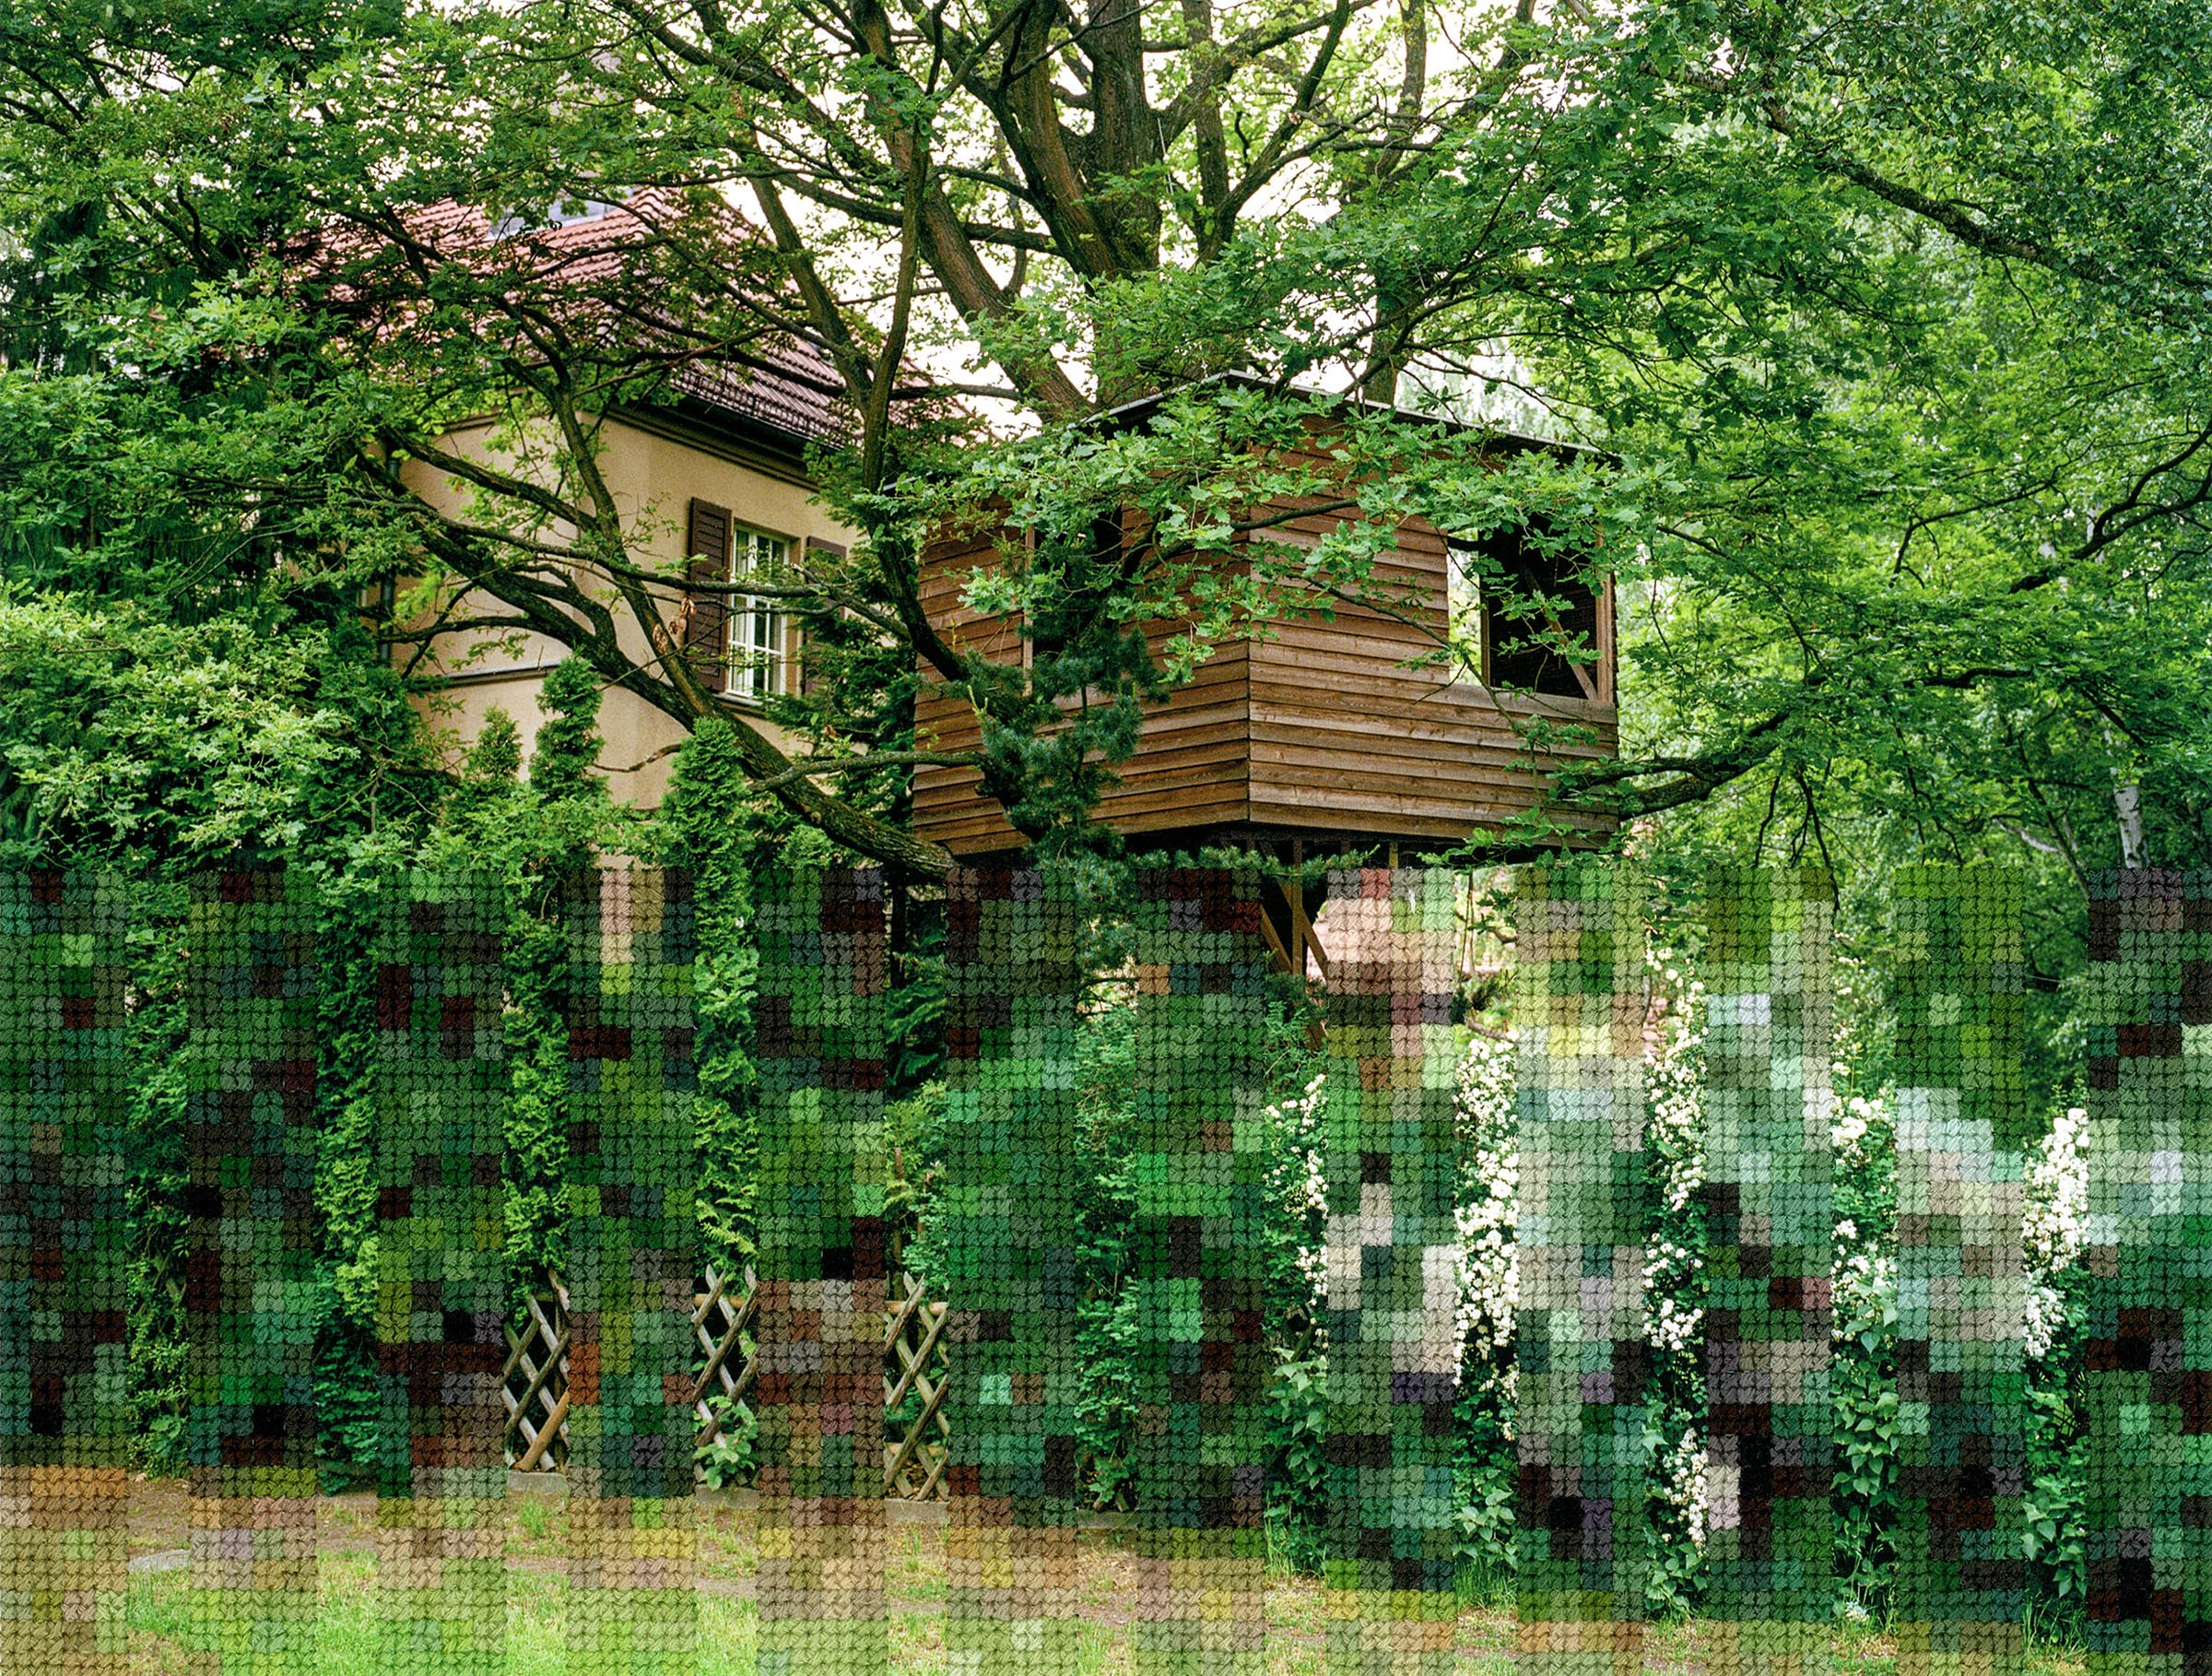 Diane Meyer , Treehouse, Former Wall Area, Hand Sewn Archival Ink Jet Print, 7.5 x 9.75 inches, 2019